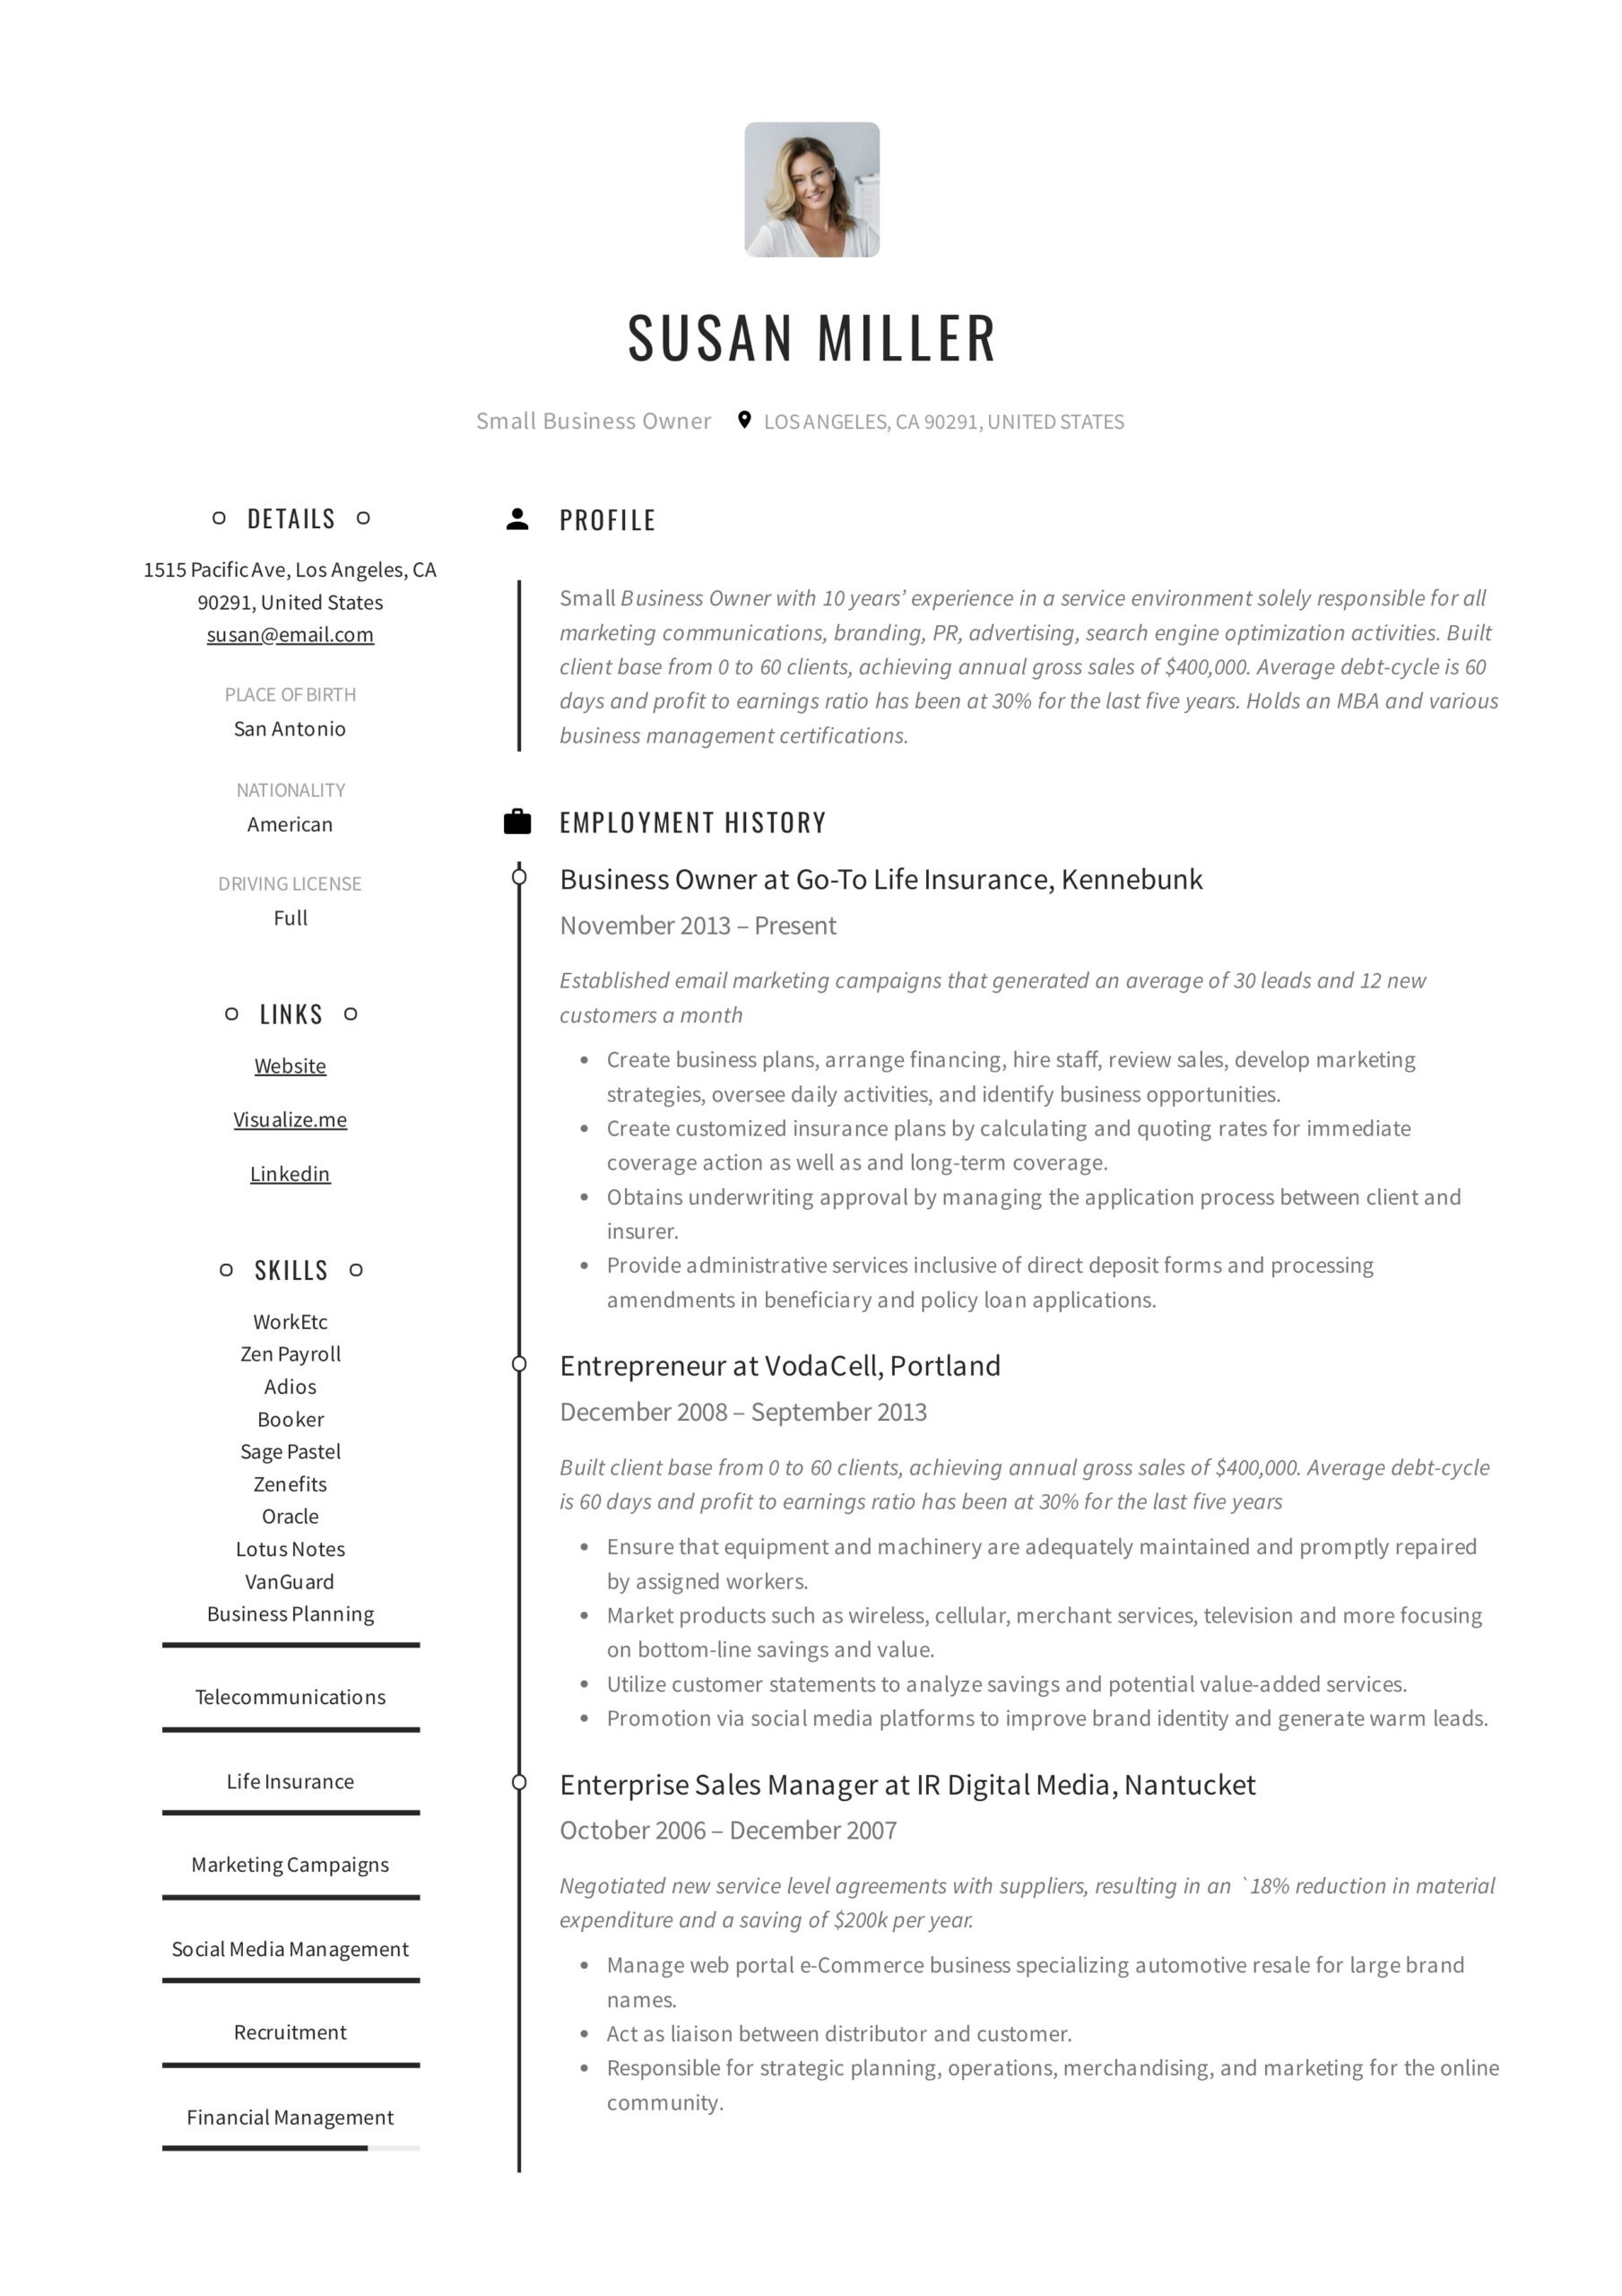 small business owner resume guide examples pdf entrepreneur samples example elementary Resume Entrepreneur Resume Samples